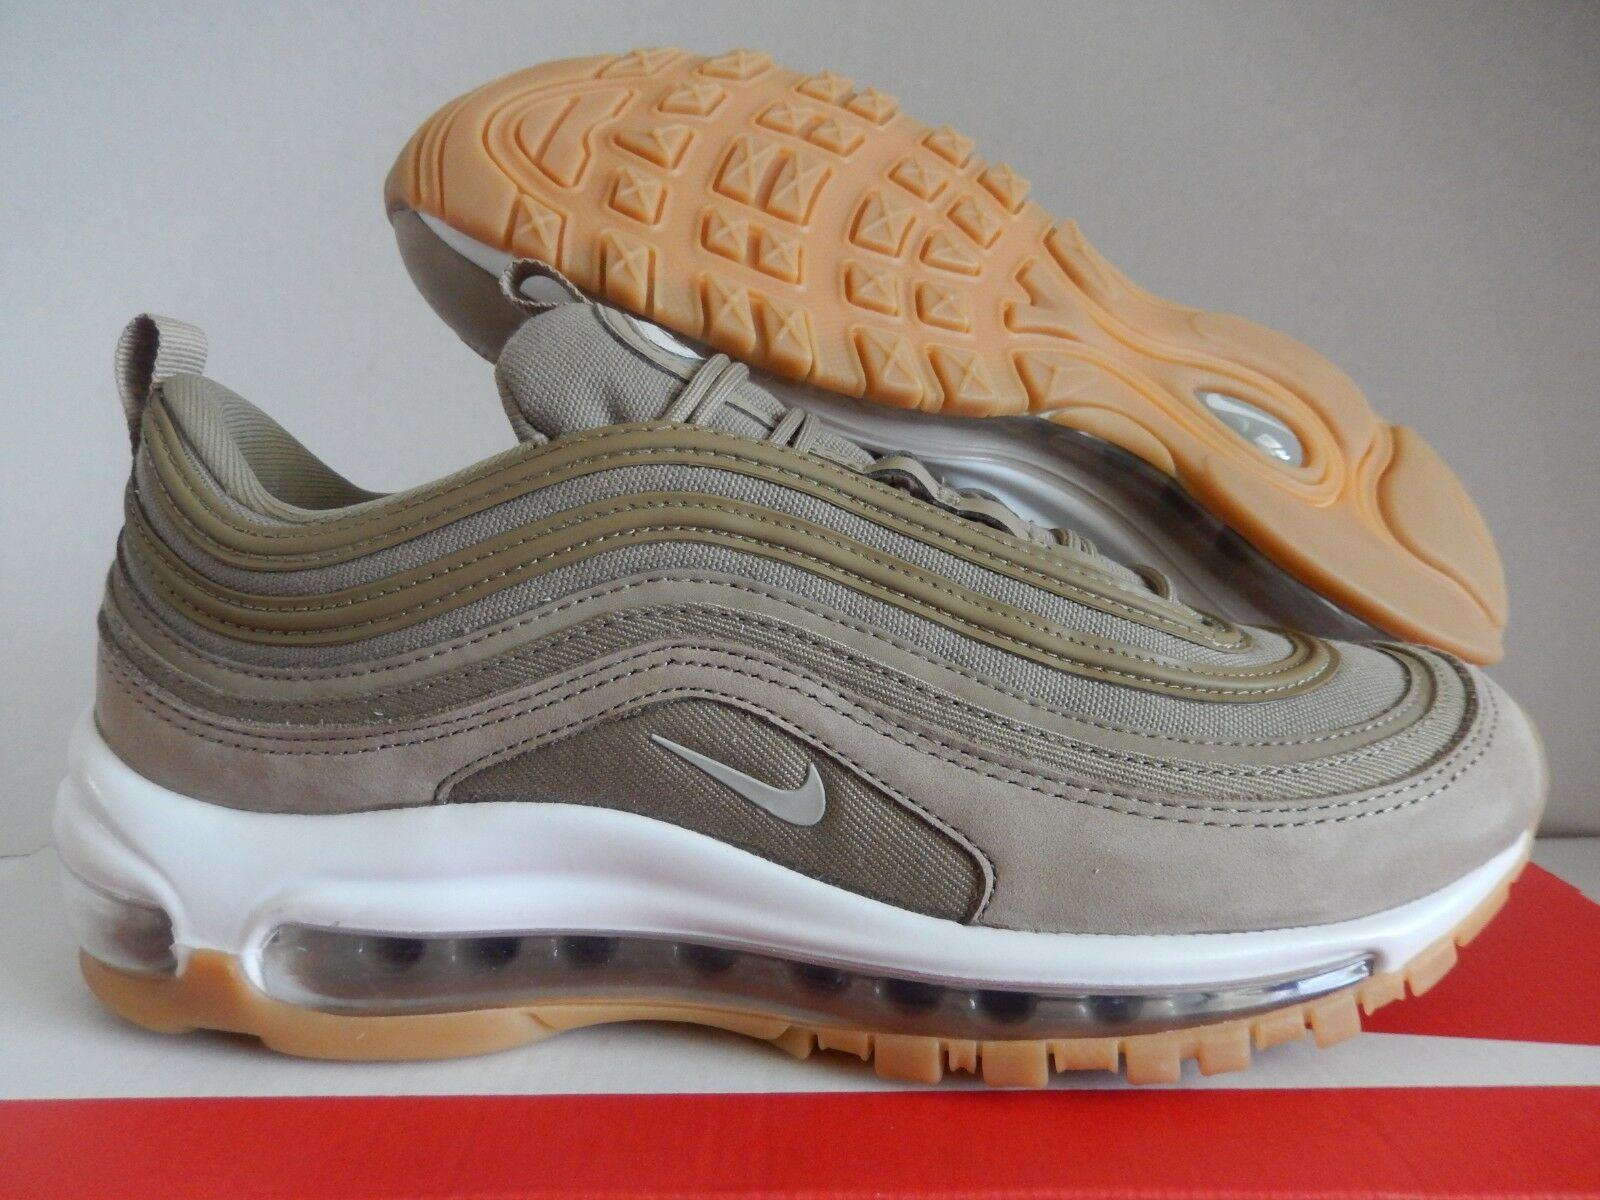 Wmns nike air max 97 ut khaki-light osso sz 8 [aj2248-200]